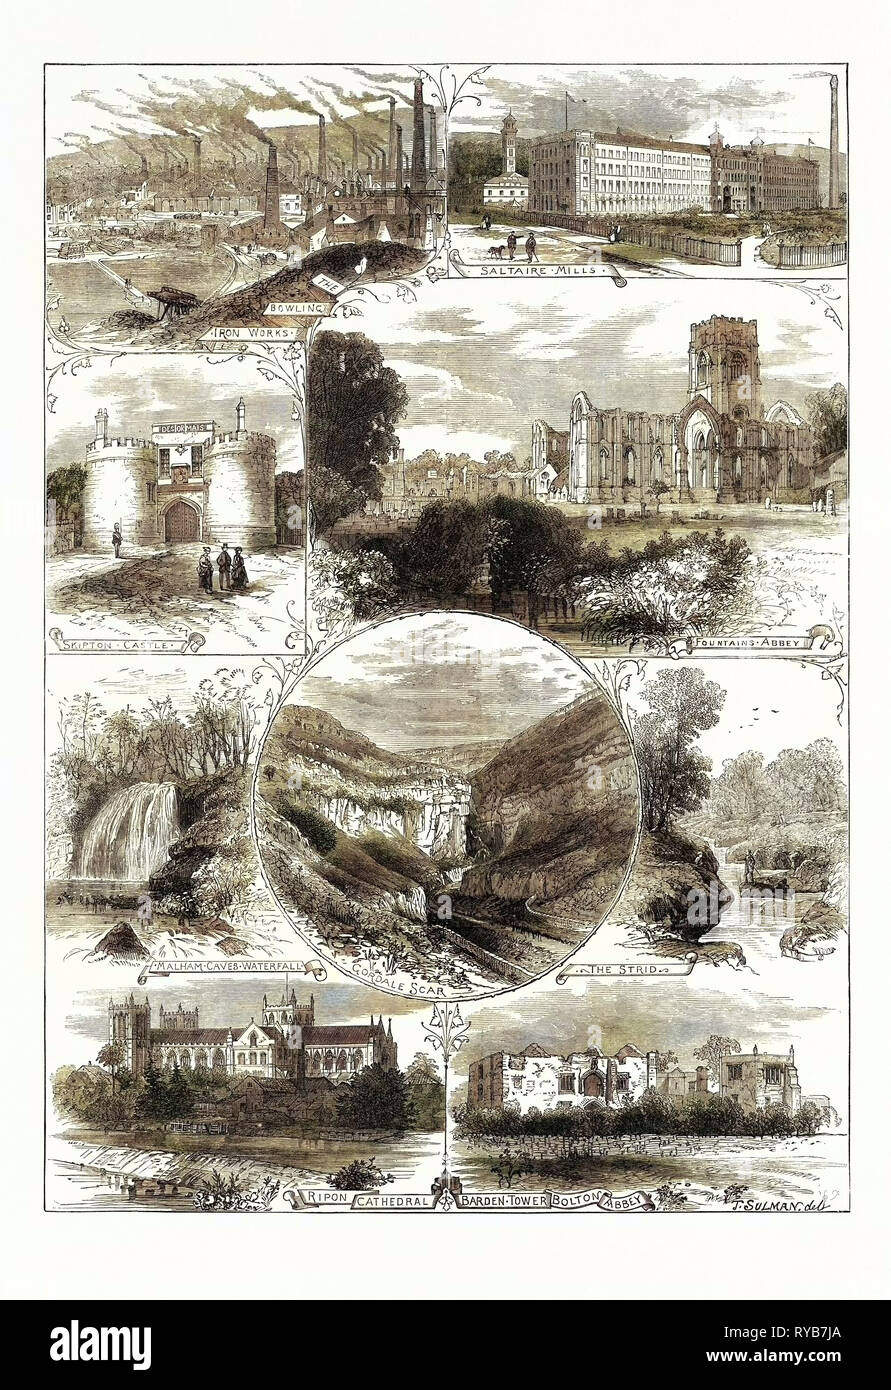 Places Near Bradford Visited by the British Association, 1873. Skipton Castle, Saltaire Mills, Fountains Abbey, Malham Caves Waterfall, Ripon Cathedral, Barden Tower, Bolton Abbey, the Strid, Iron Works - Stock Image